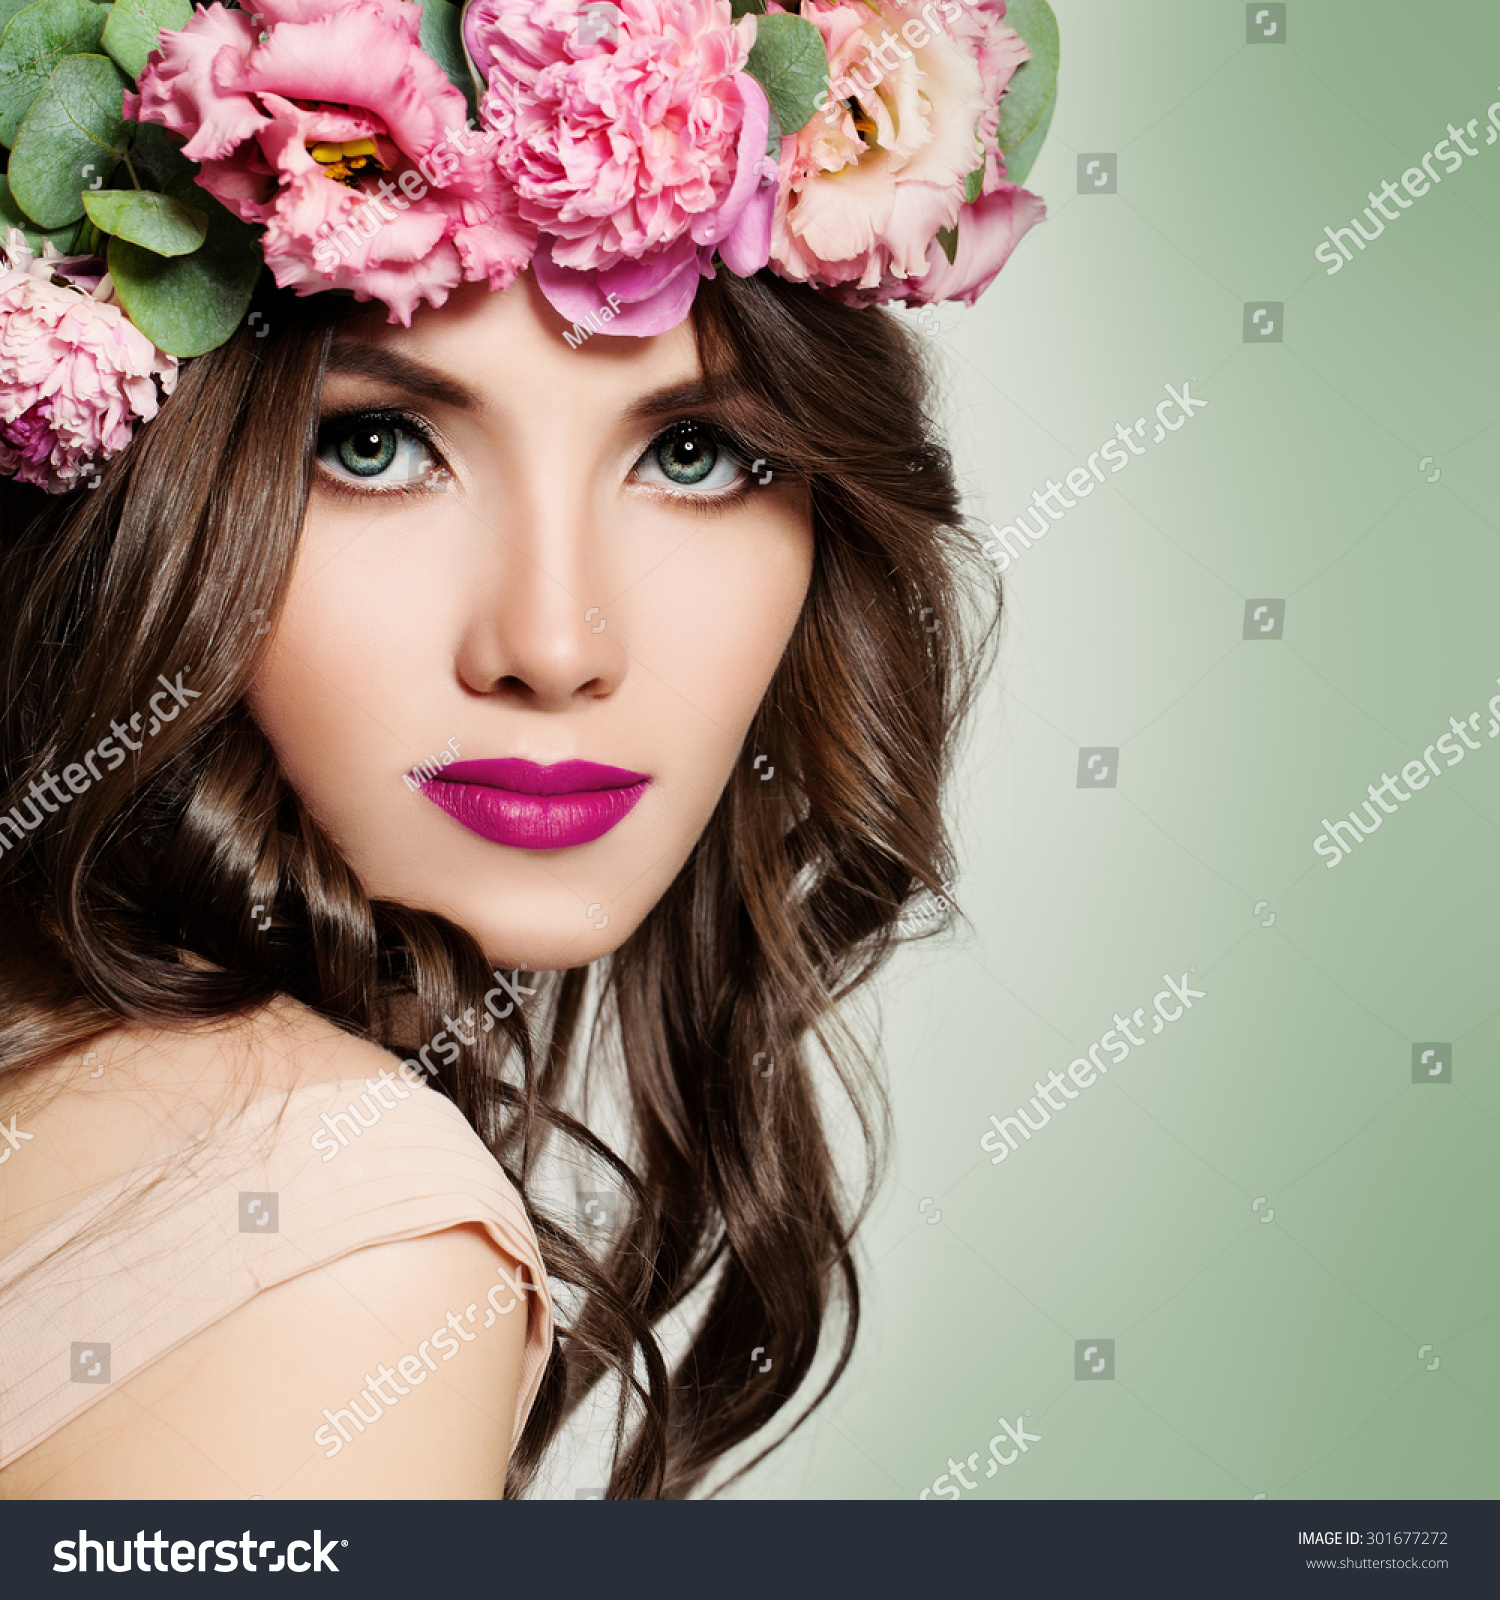 Royalty free beautiful girl with flowers wreath 301677272 stock beautiful girl with flowers wreath long permed curly hair and fashion makeup blossom portrait of pretty young woman with pink flowers stock photo izmirmasajfo Image collections